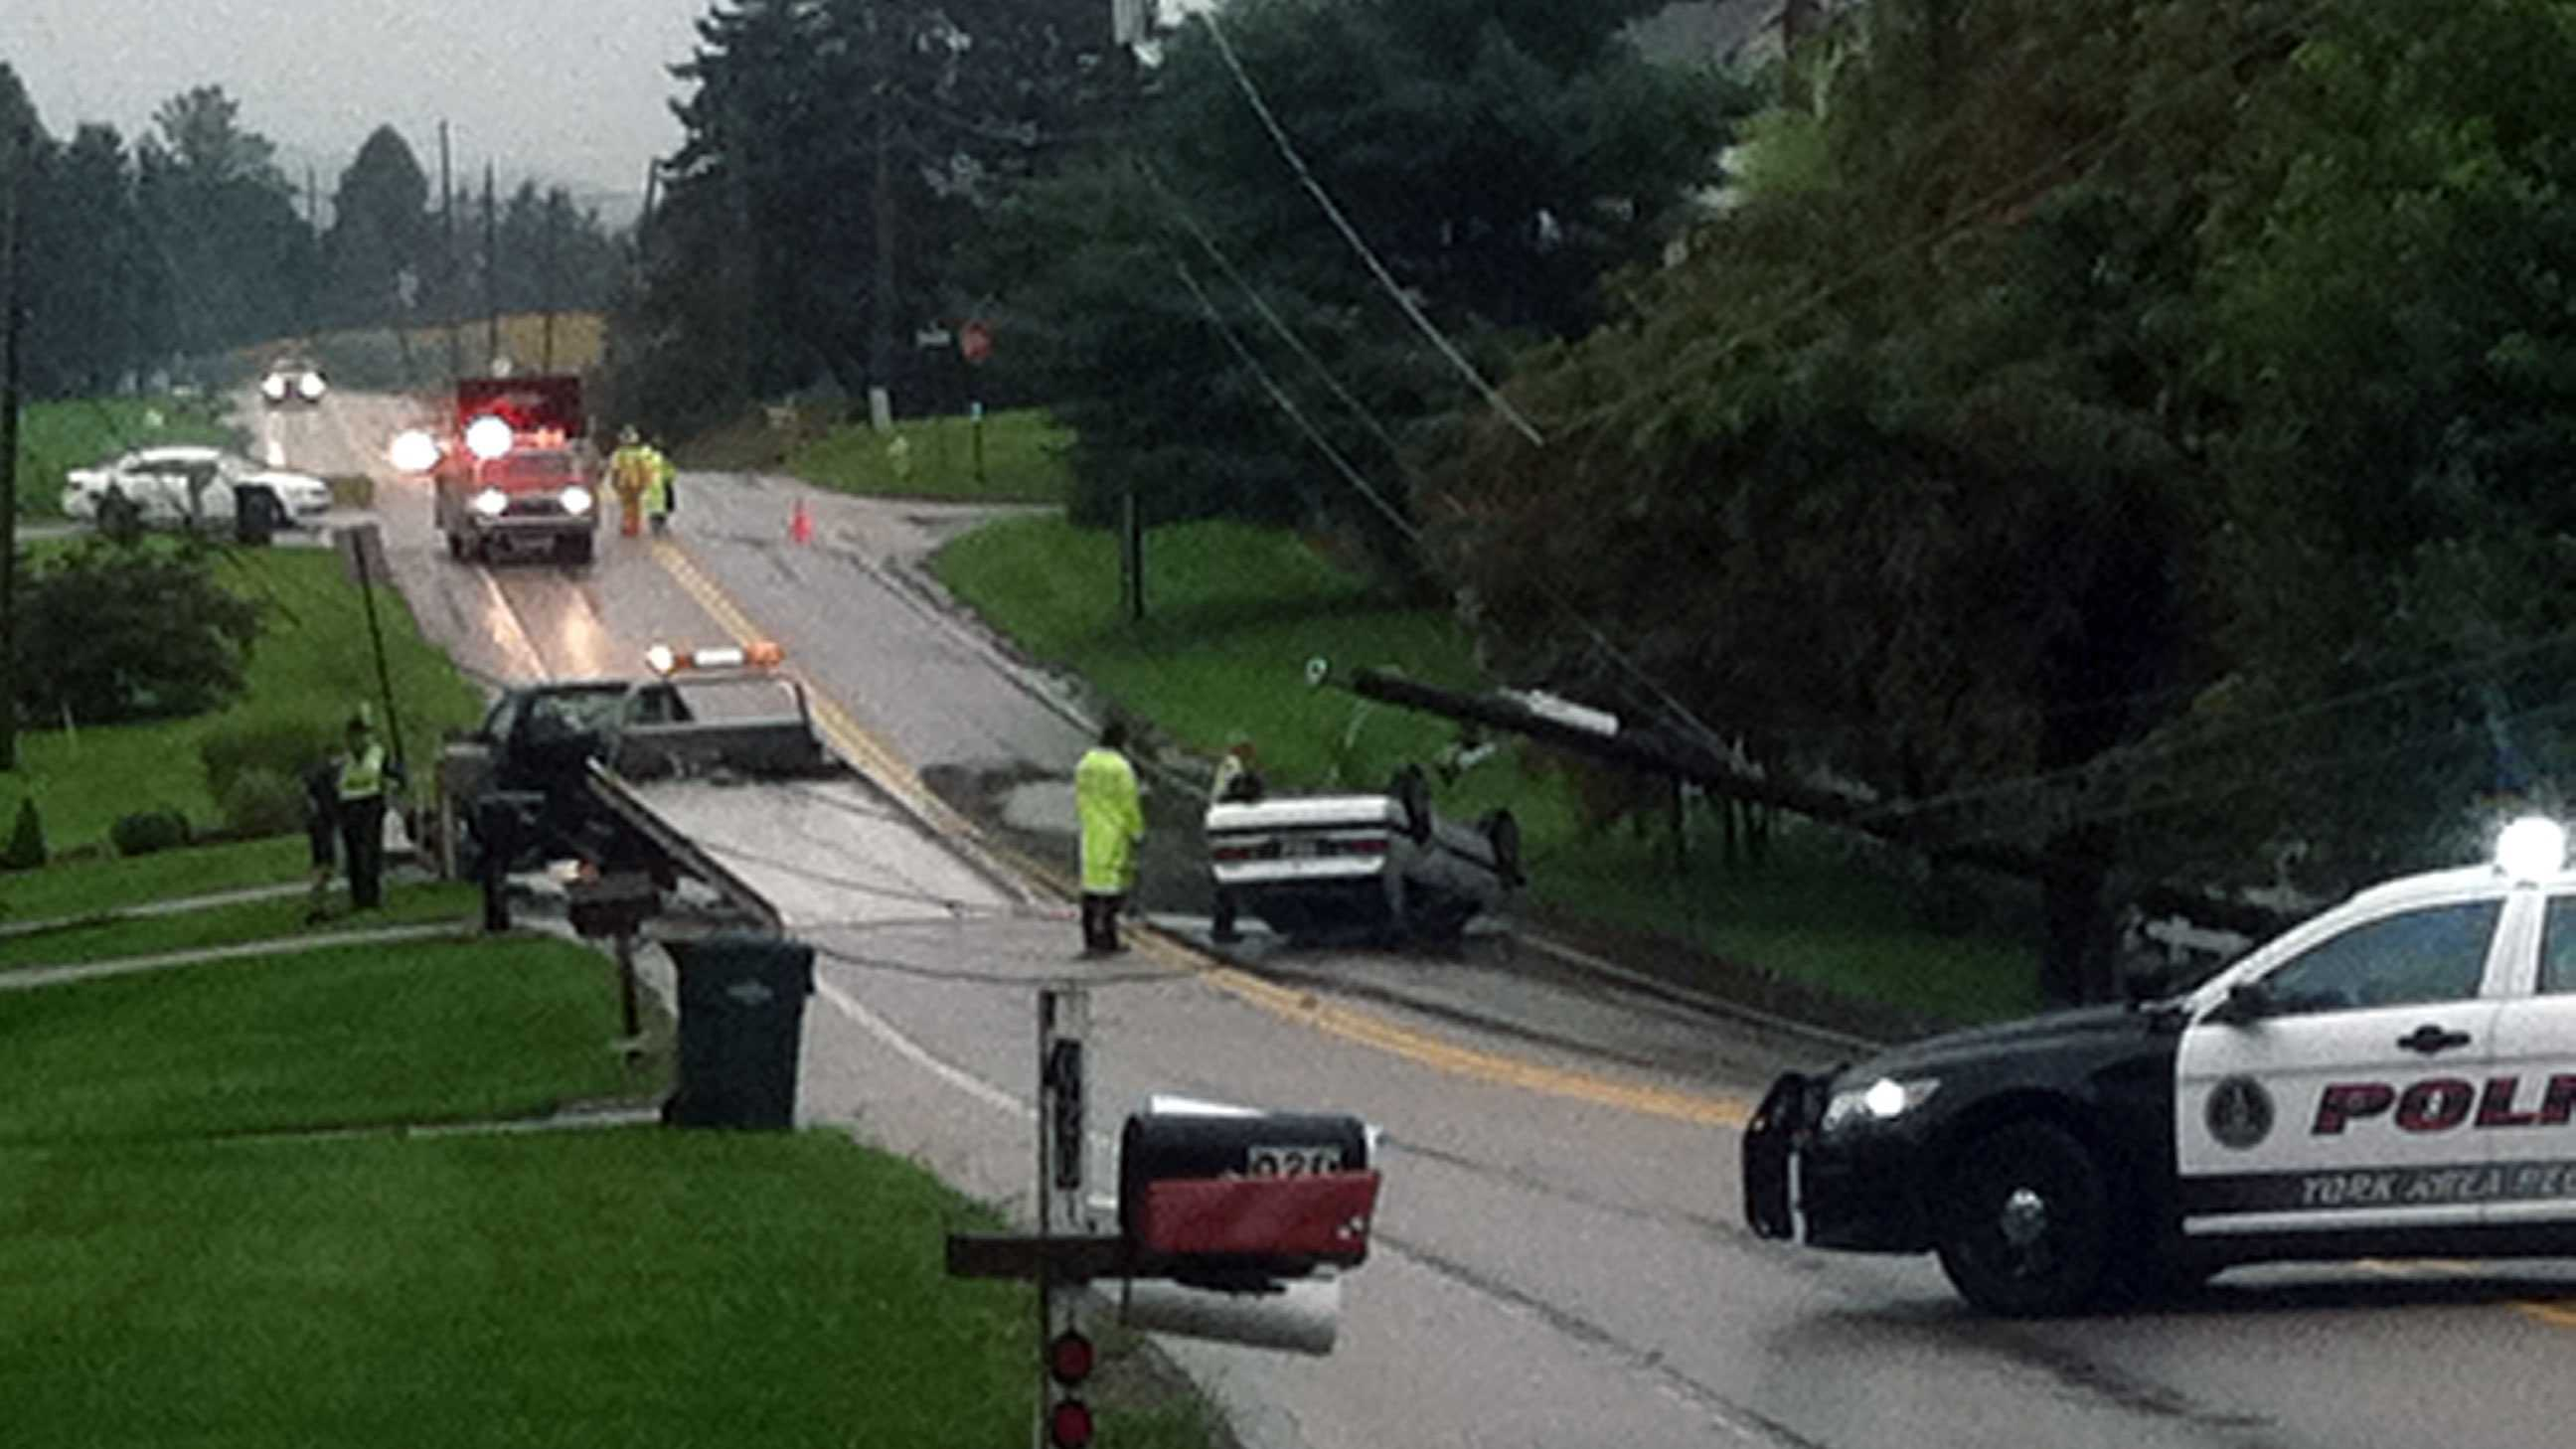 A car flipped over Tuesday morning when it hit standing water along a road in Windsor Township,York County.